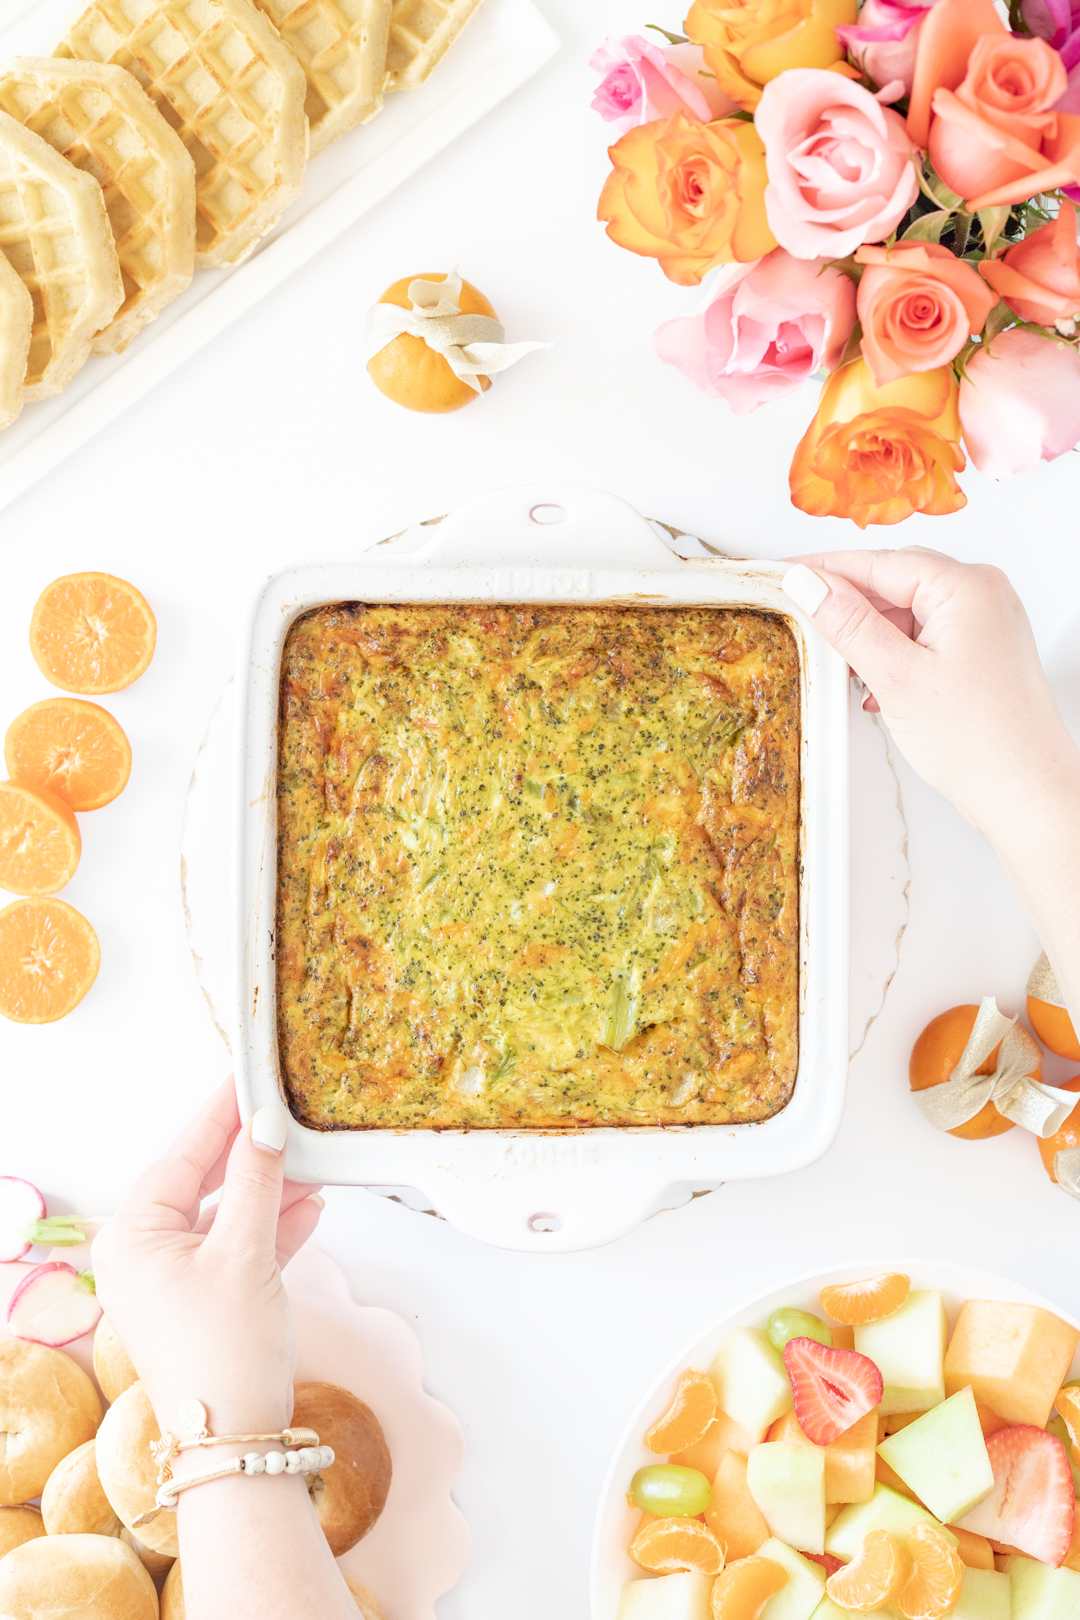 brunch casserole placed on table